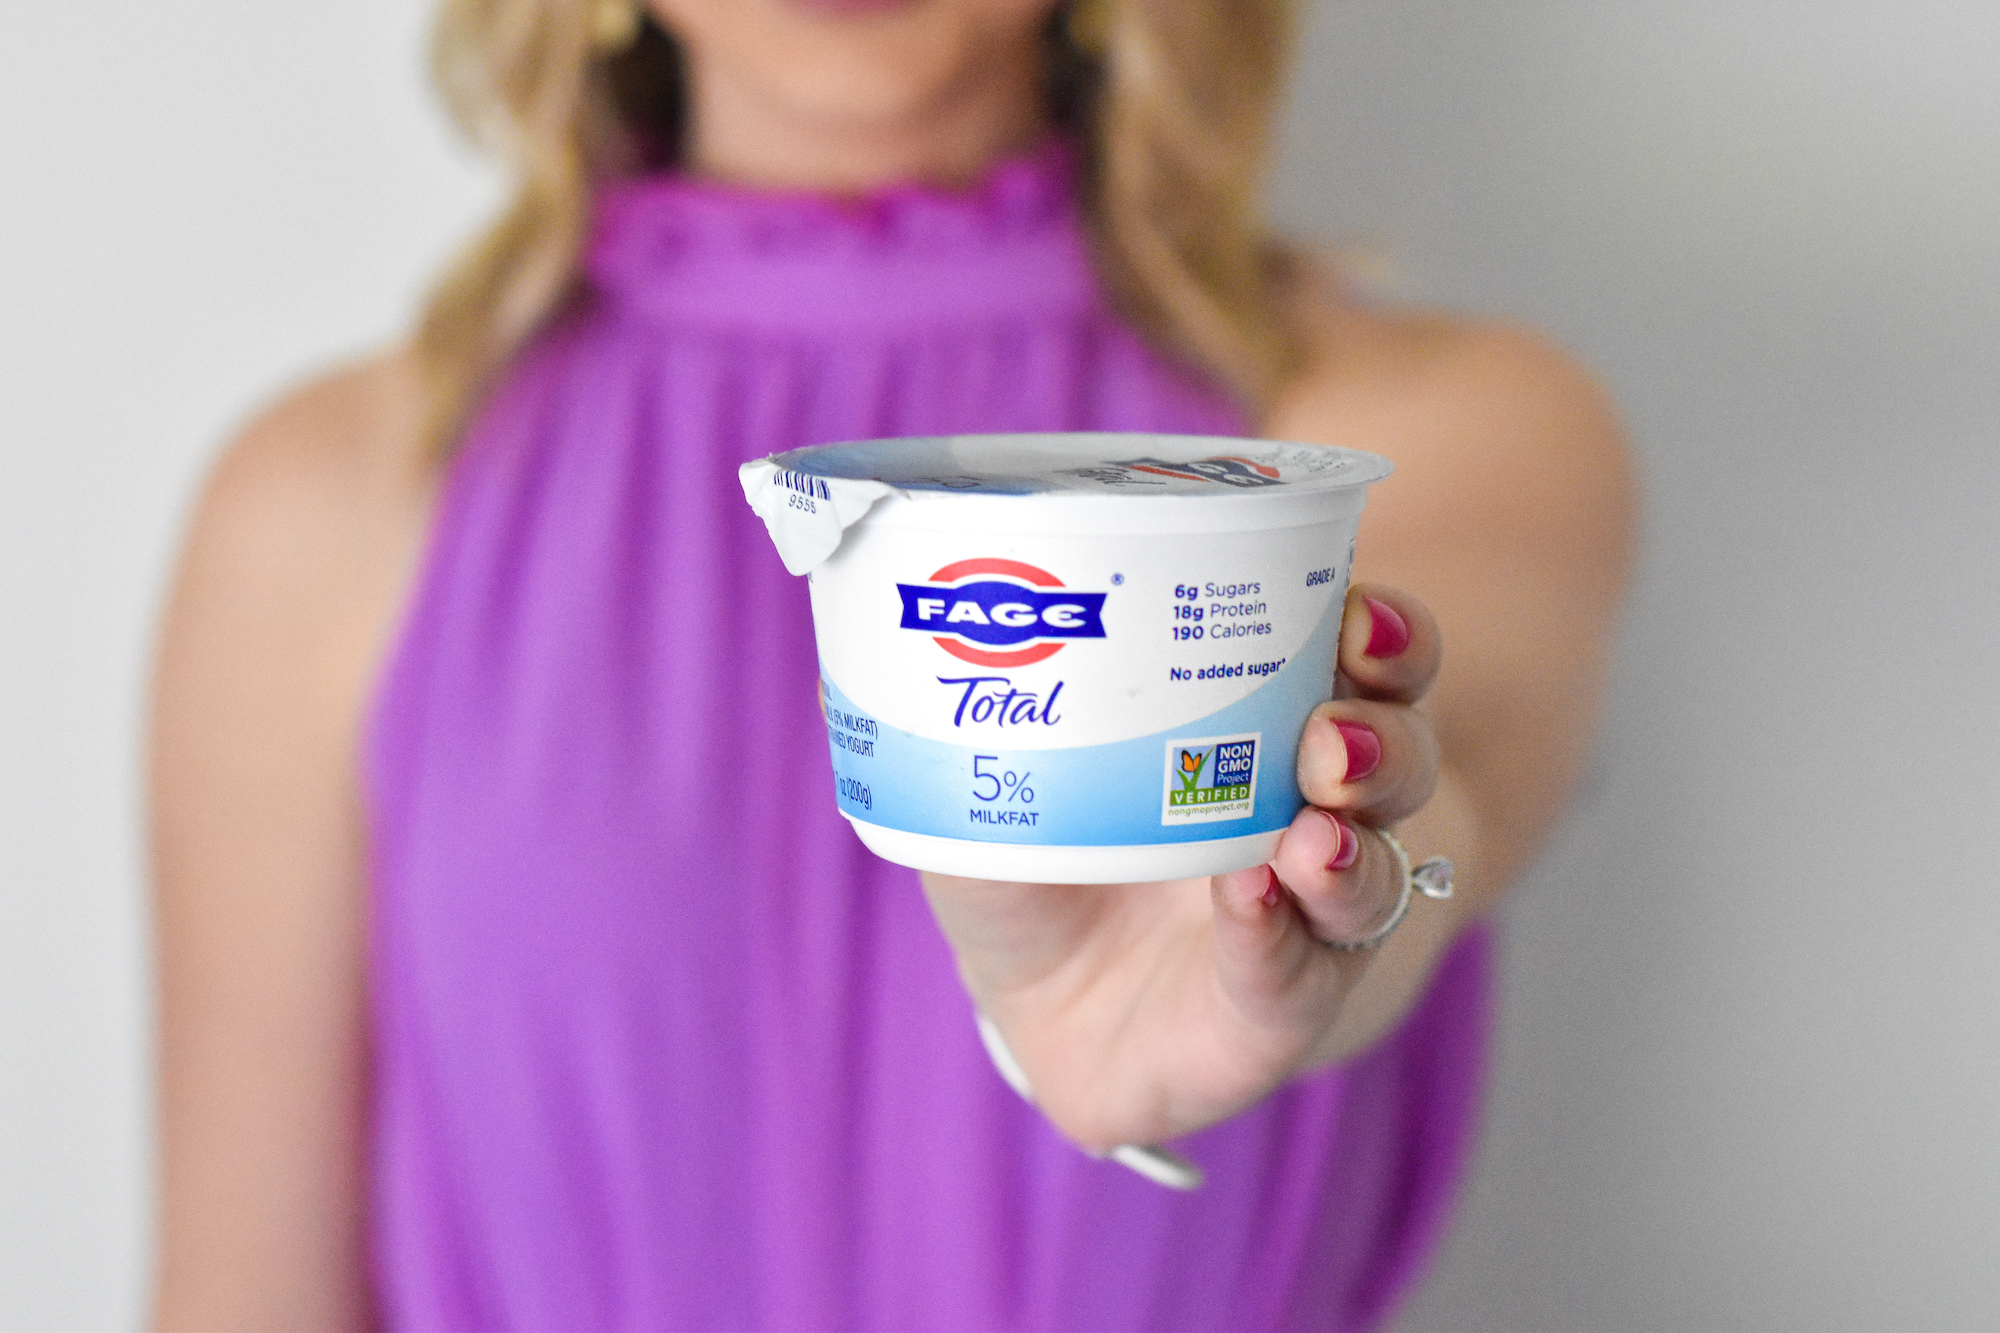 FAGE Total 5% Greek Yogurt Recipe 7